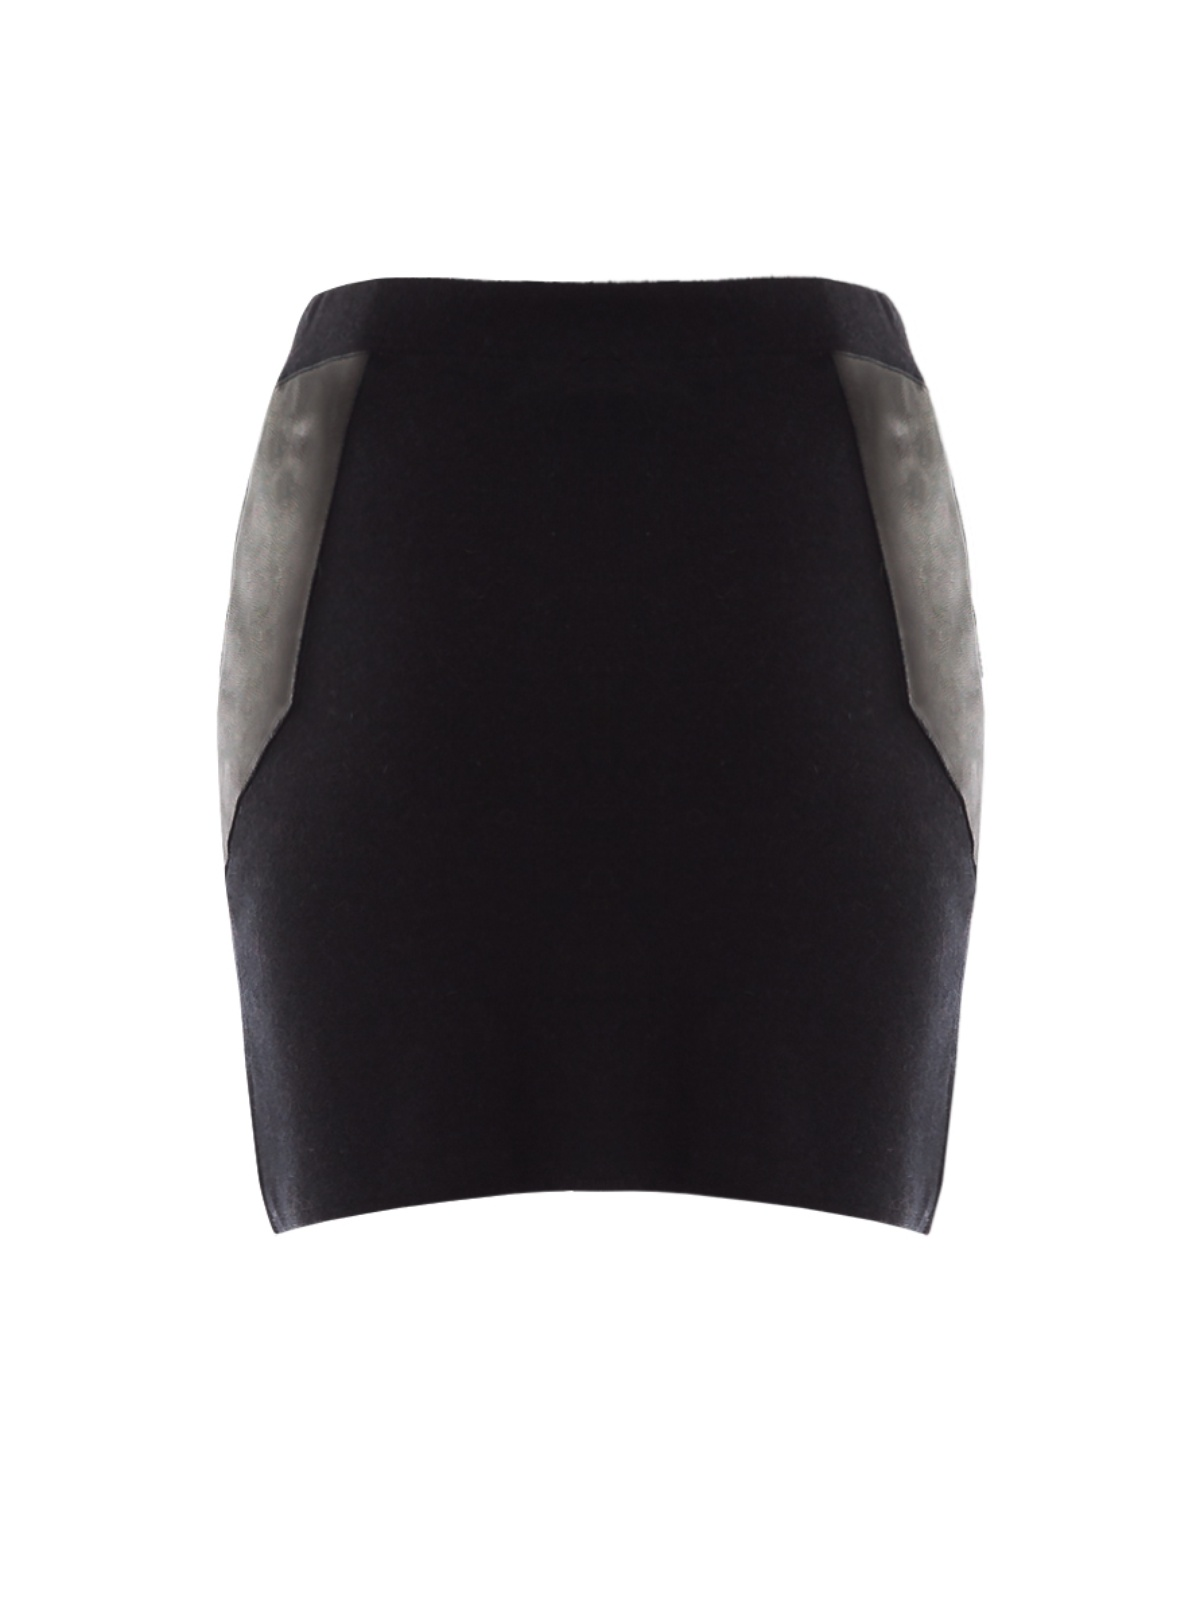 Shop for fashion trends in skirts